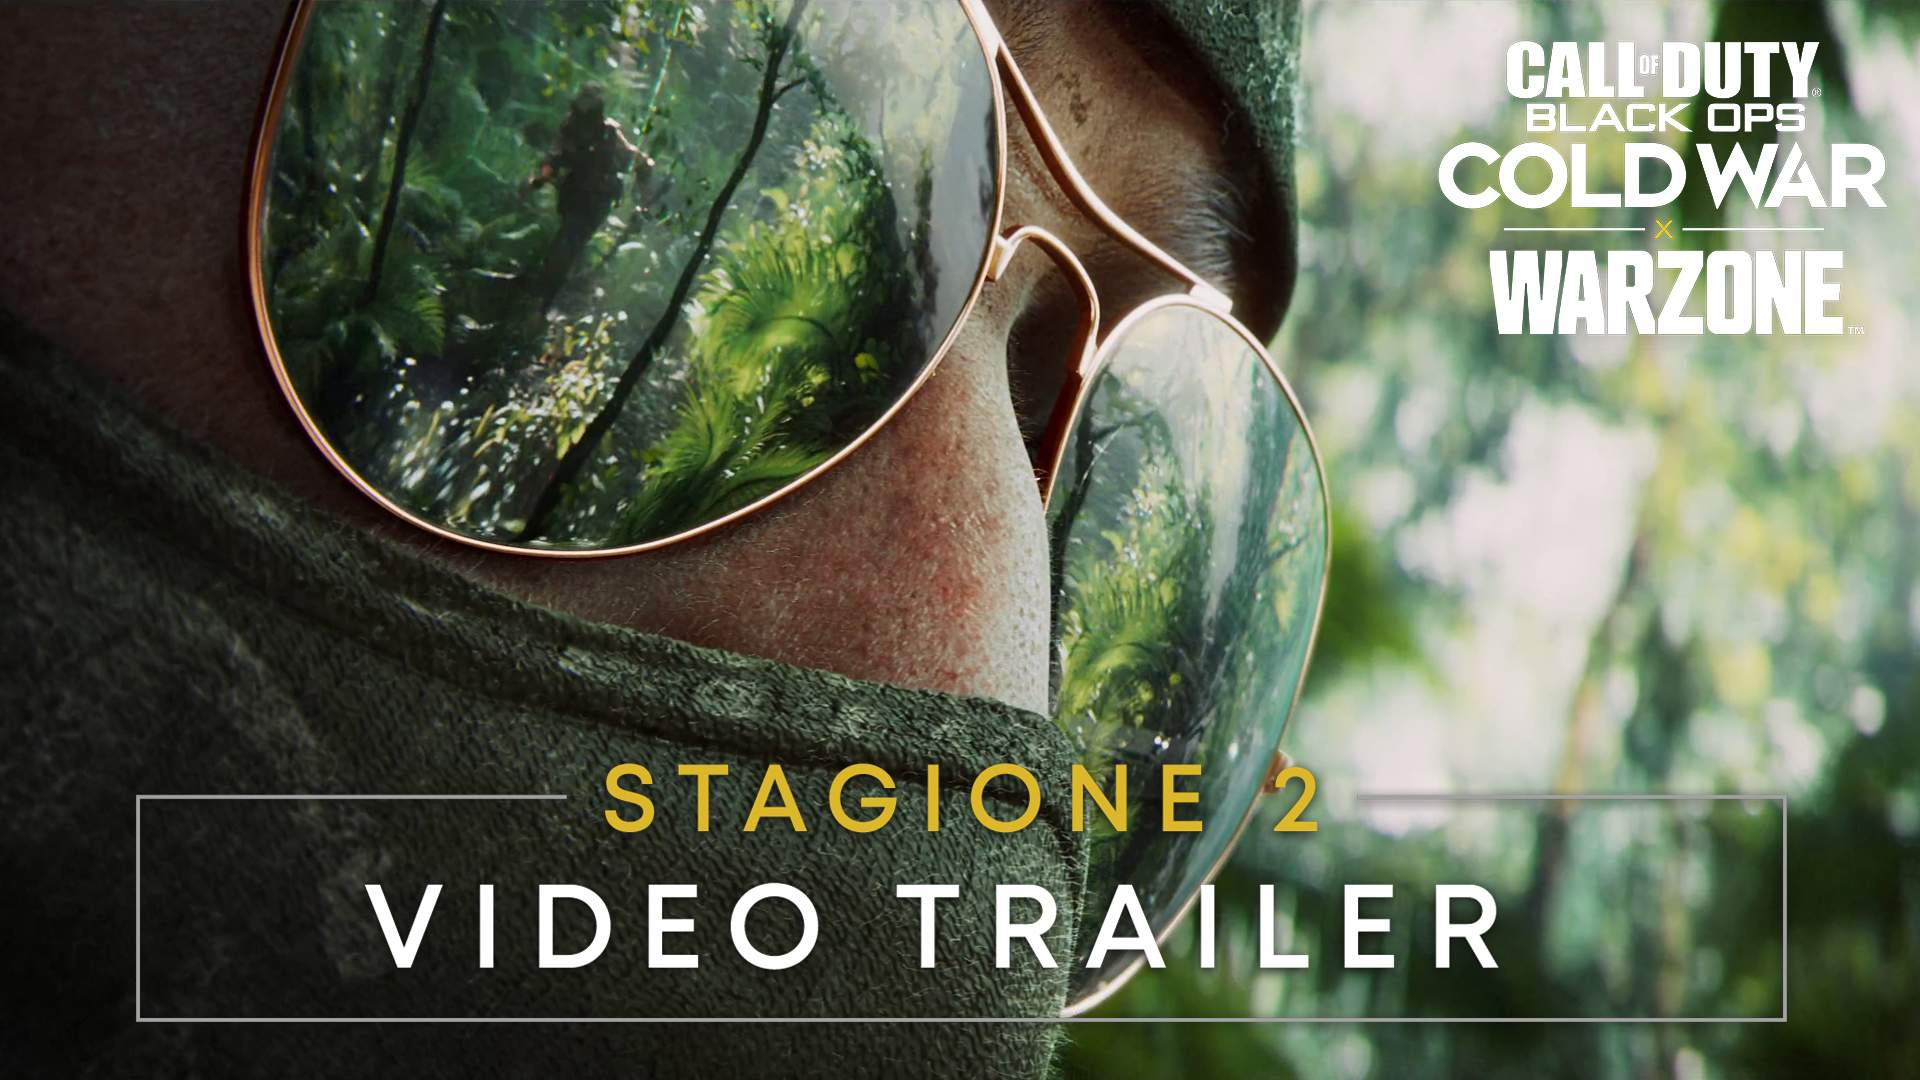 Call of Duty Black Ops Cold War & Warzone | Stagione 2 - Trailer ufficiale